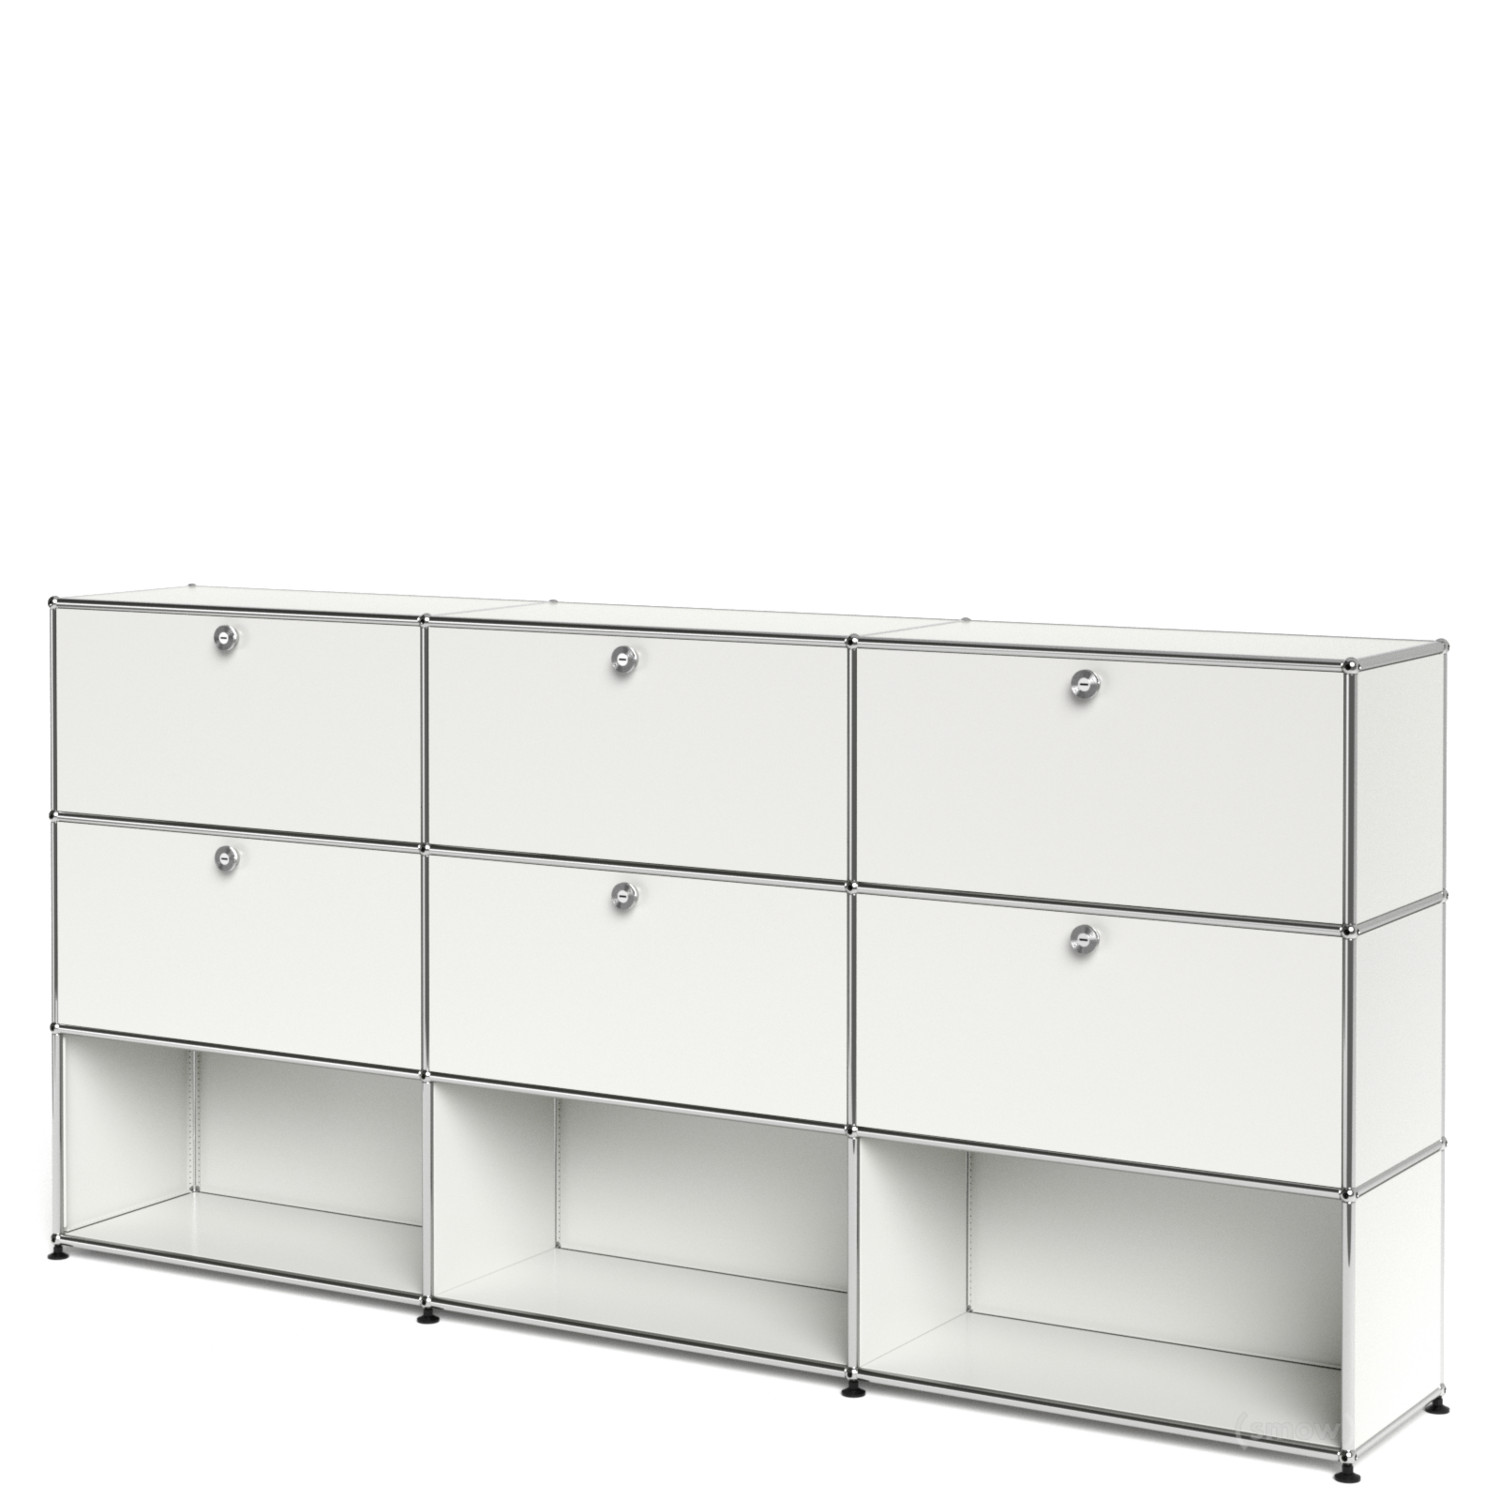 usm haller highboard xl individualisierbar reinwei ral 9010 mit 3 klappen mit 3 klappen. Black Bedroom Furniture Sets. Home Design Ideas